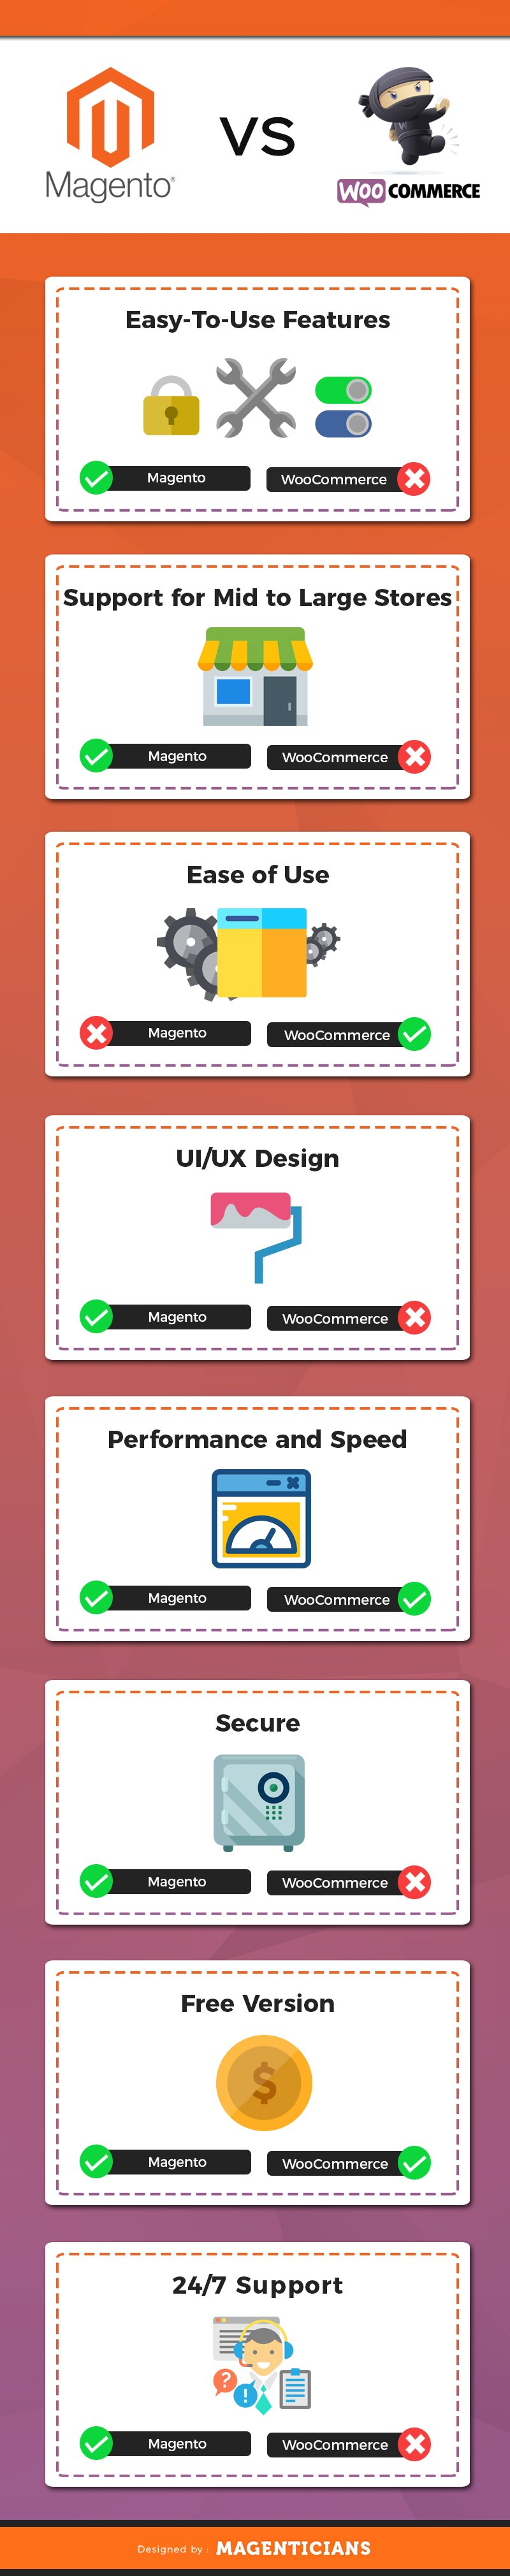 woocommere vs magento infographic